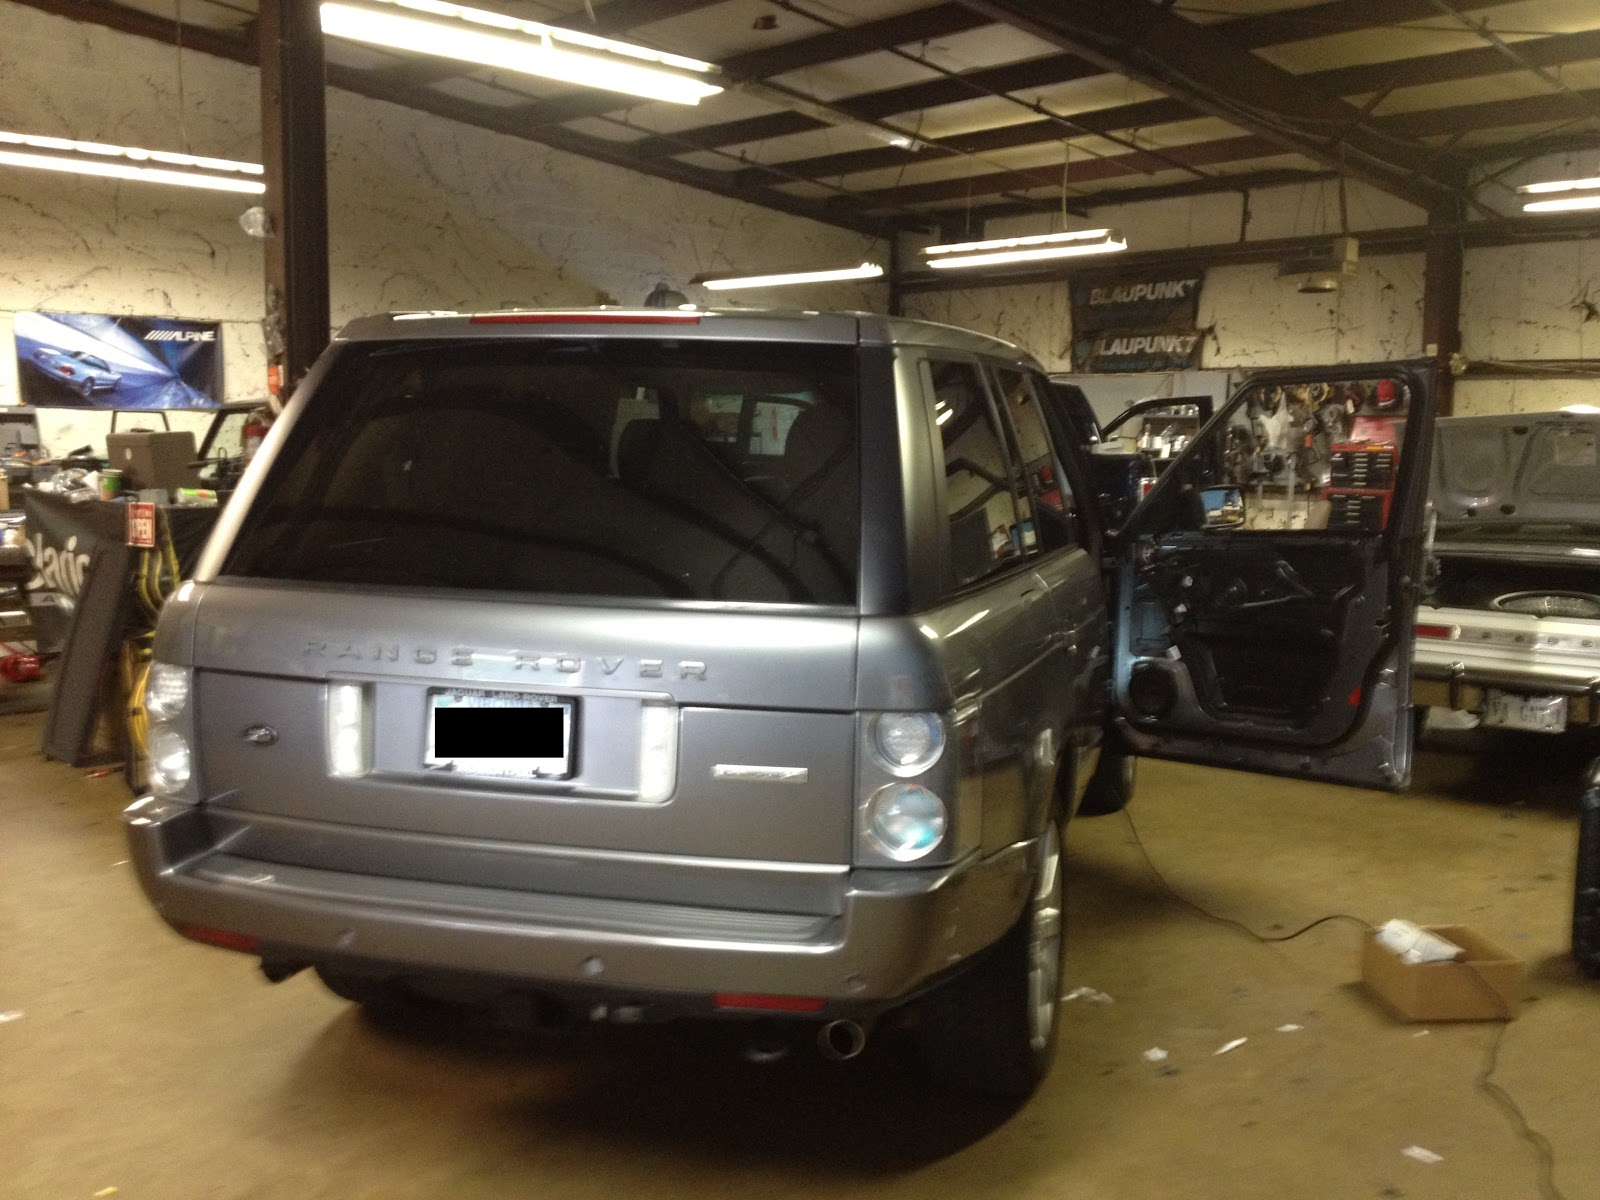 Range Rover For Subwoofer And Speakers Hurleys